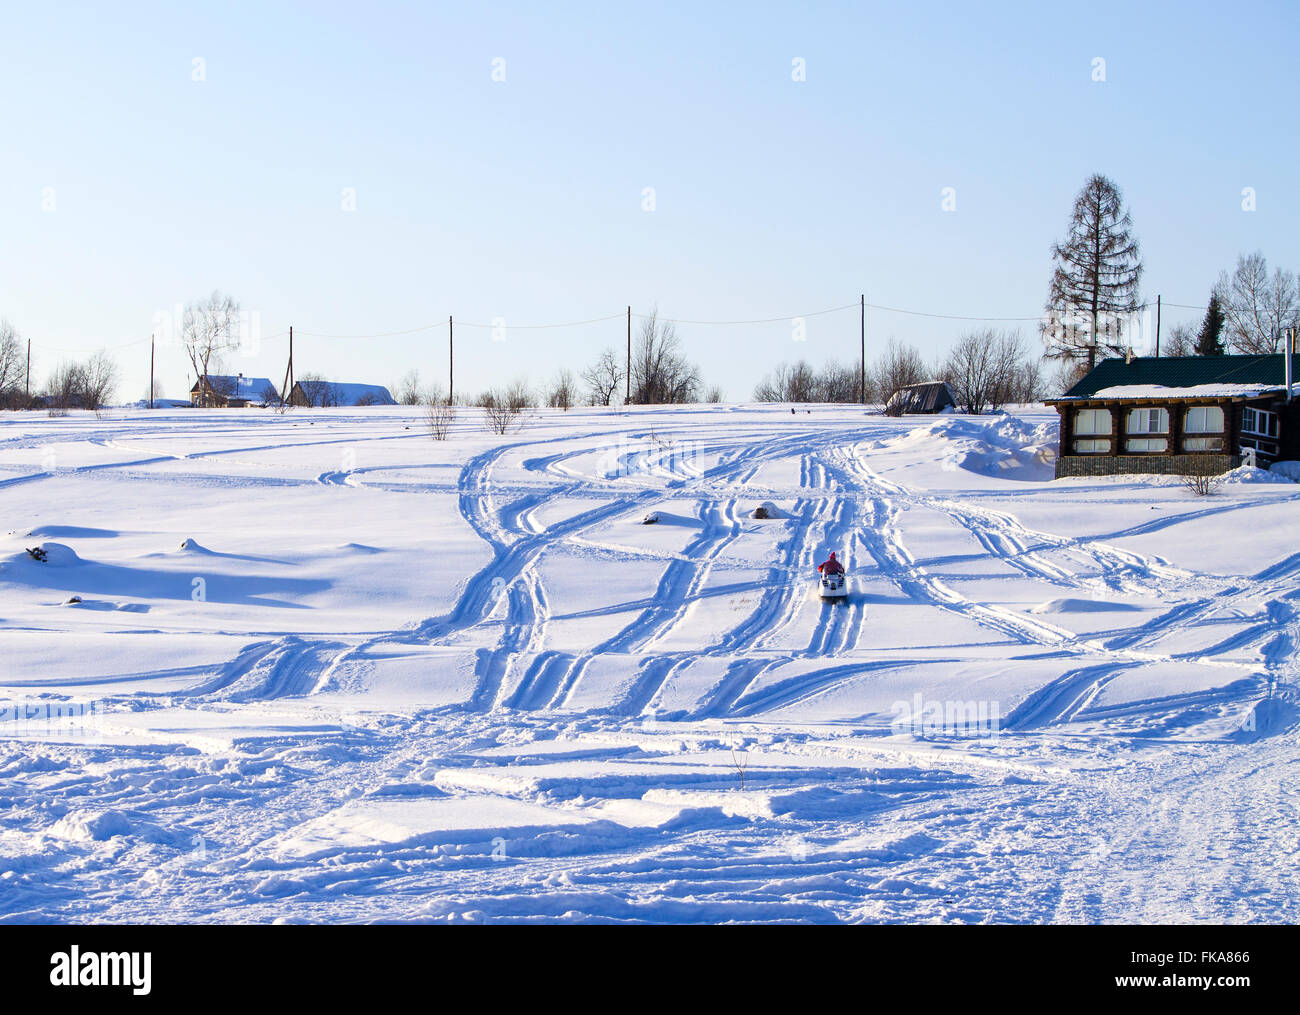 village landscape in the winter on a grief,a landscape, a snowmobile, a winter season, at home, descent, Russia, - Stock Image